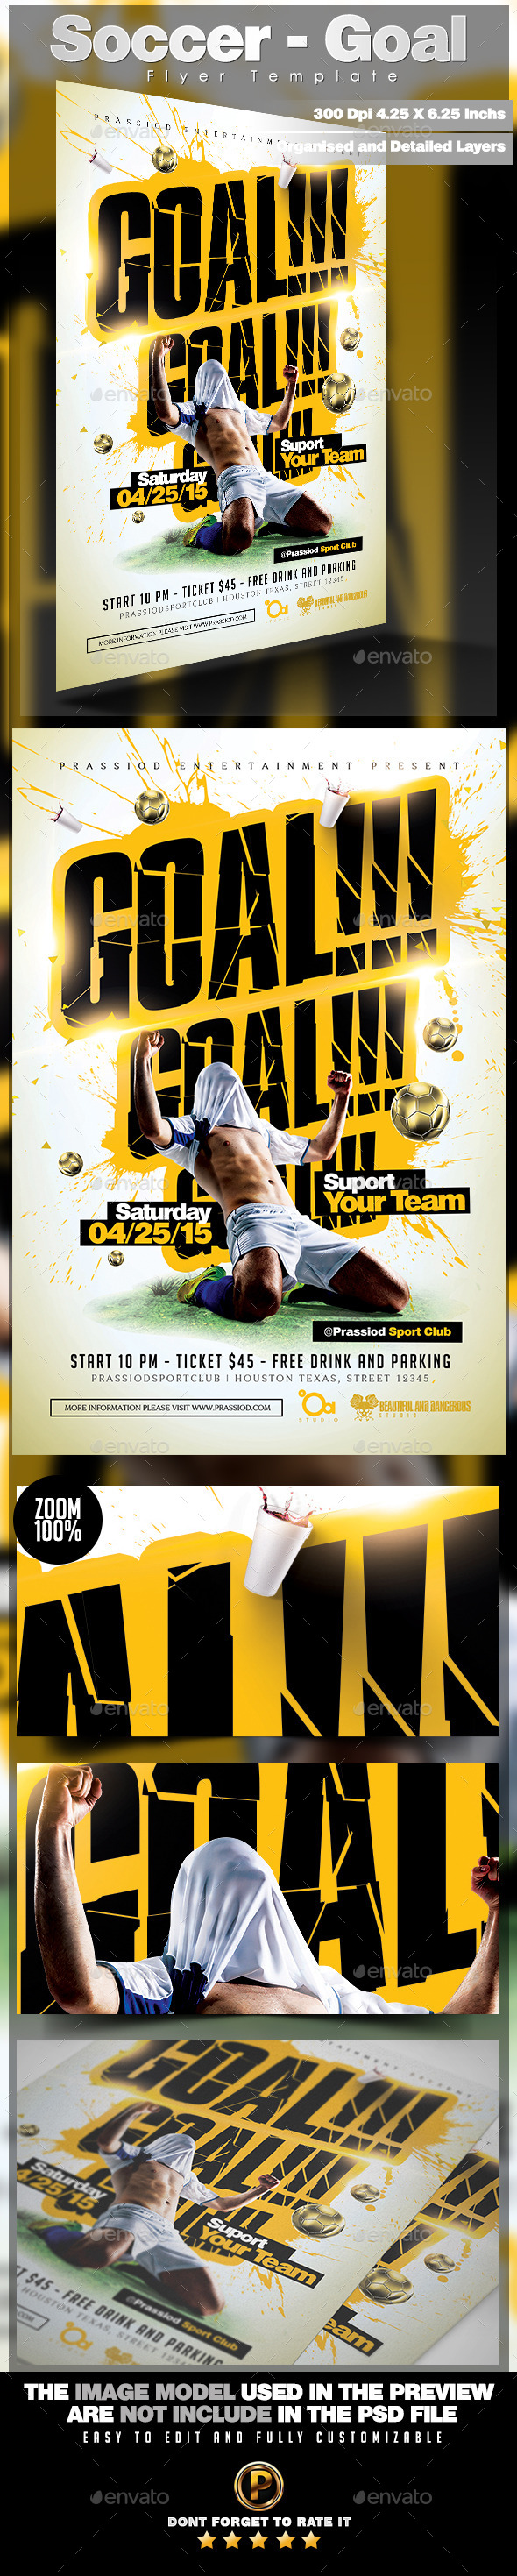 Soccer - Goal Flyer Template | Flyer template and Template